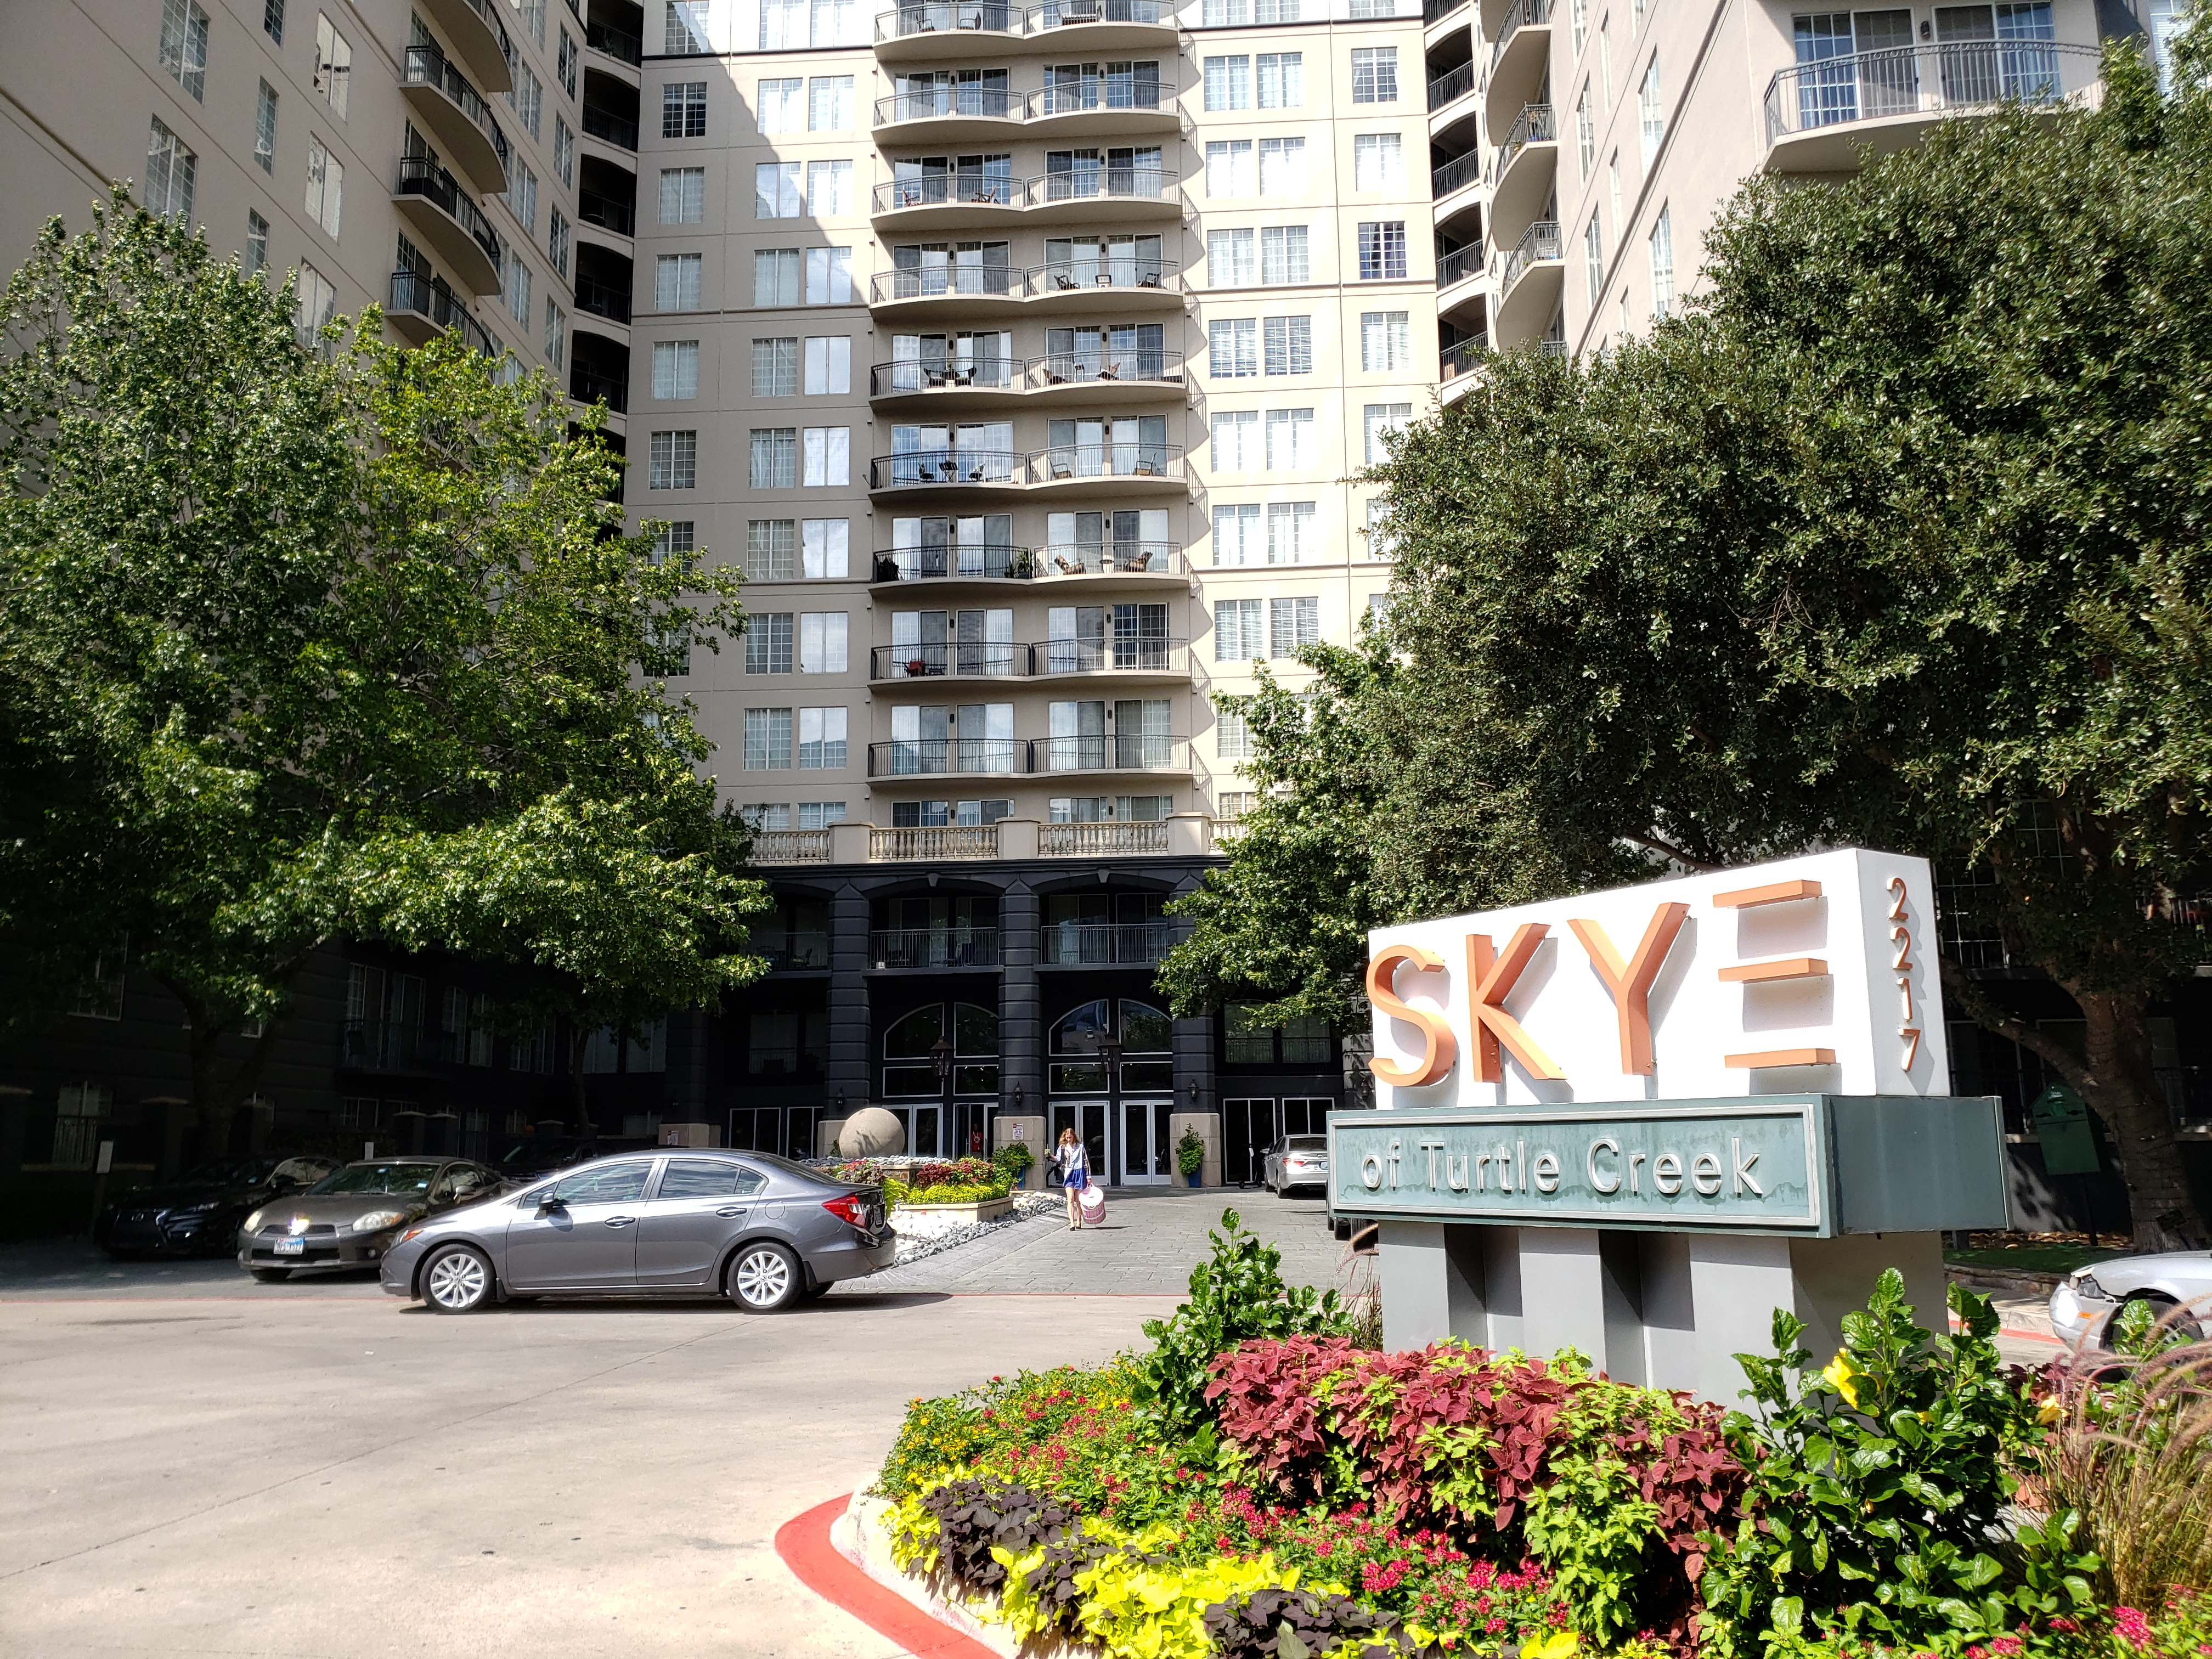 Skye of Turtle Creek - Uptown Dallas Apartments